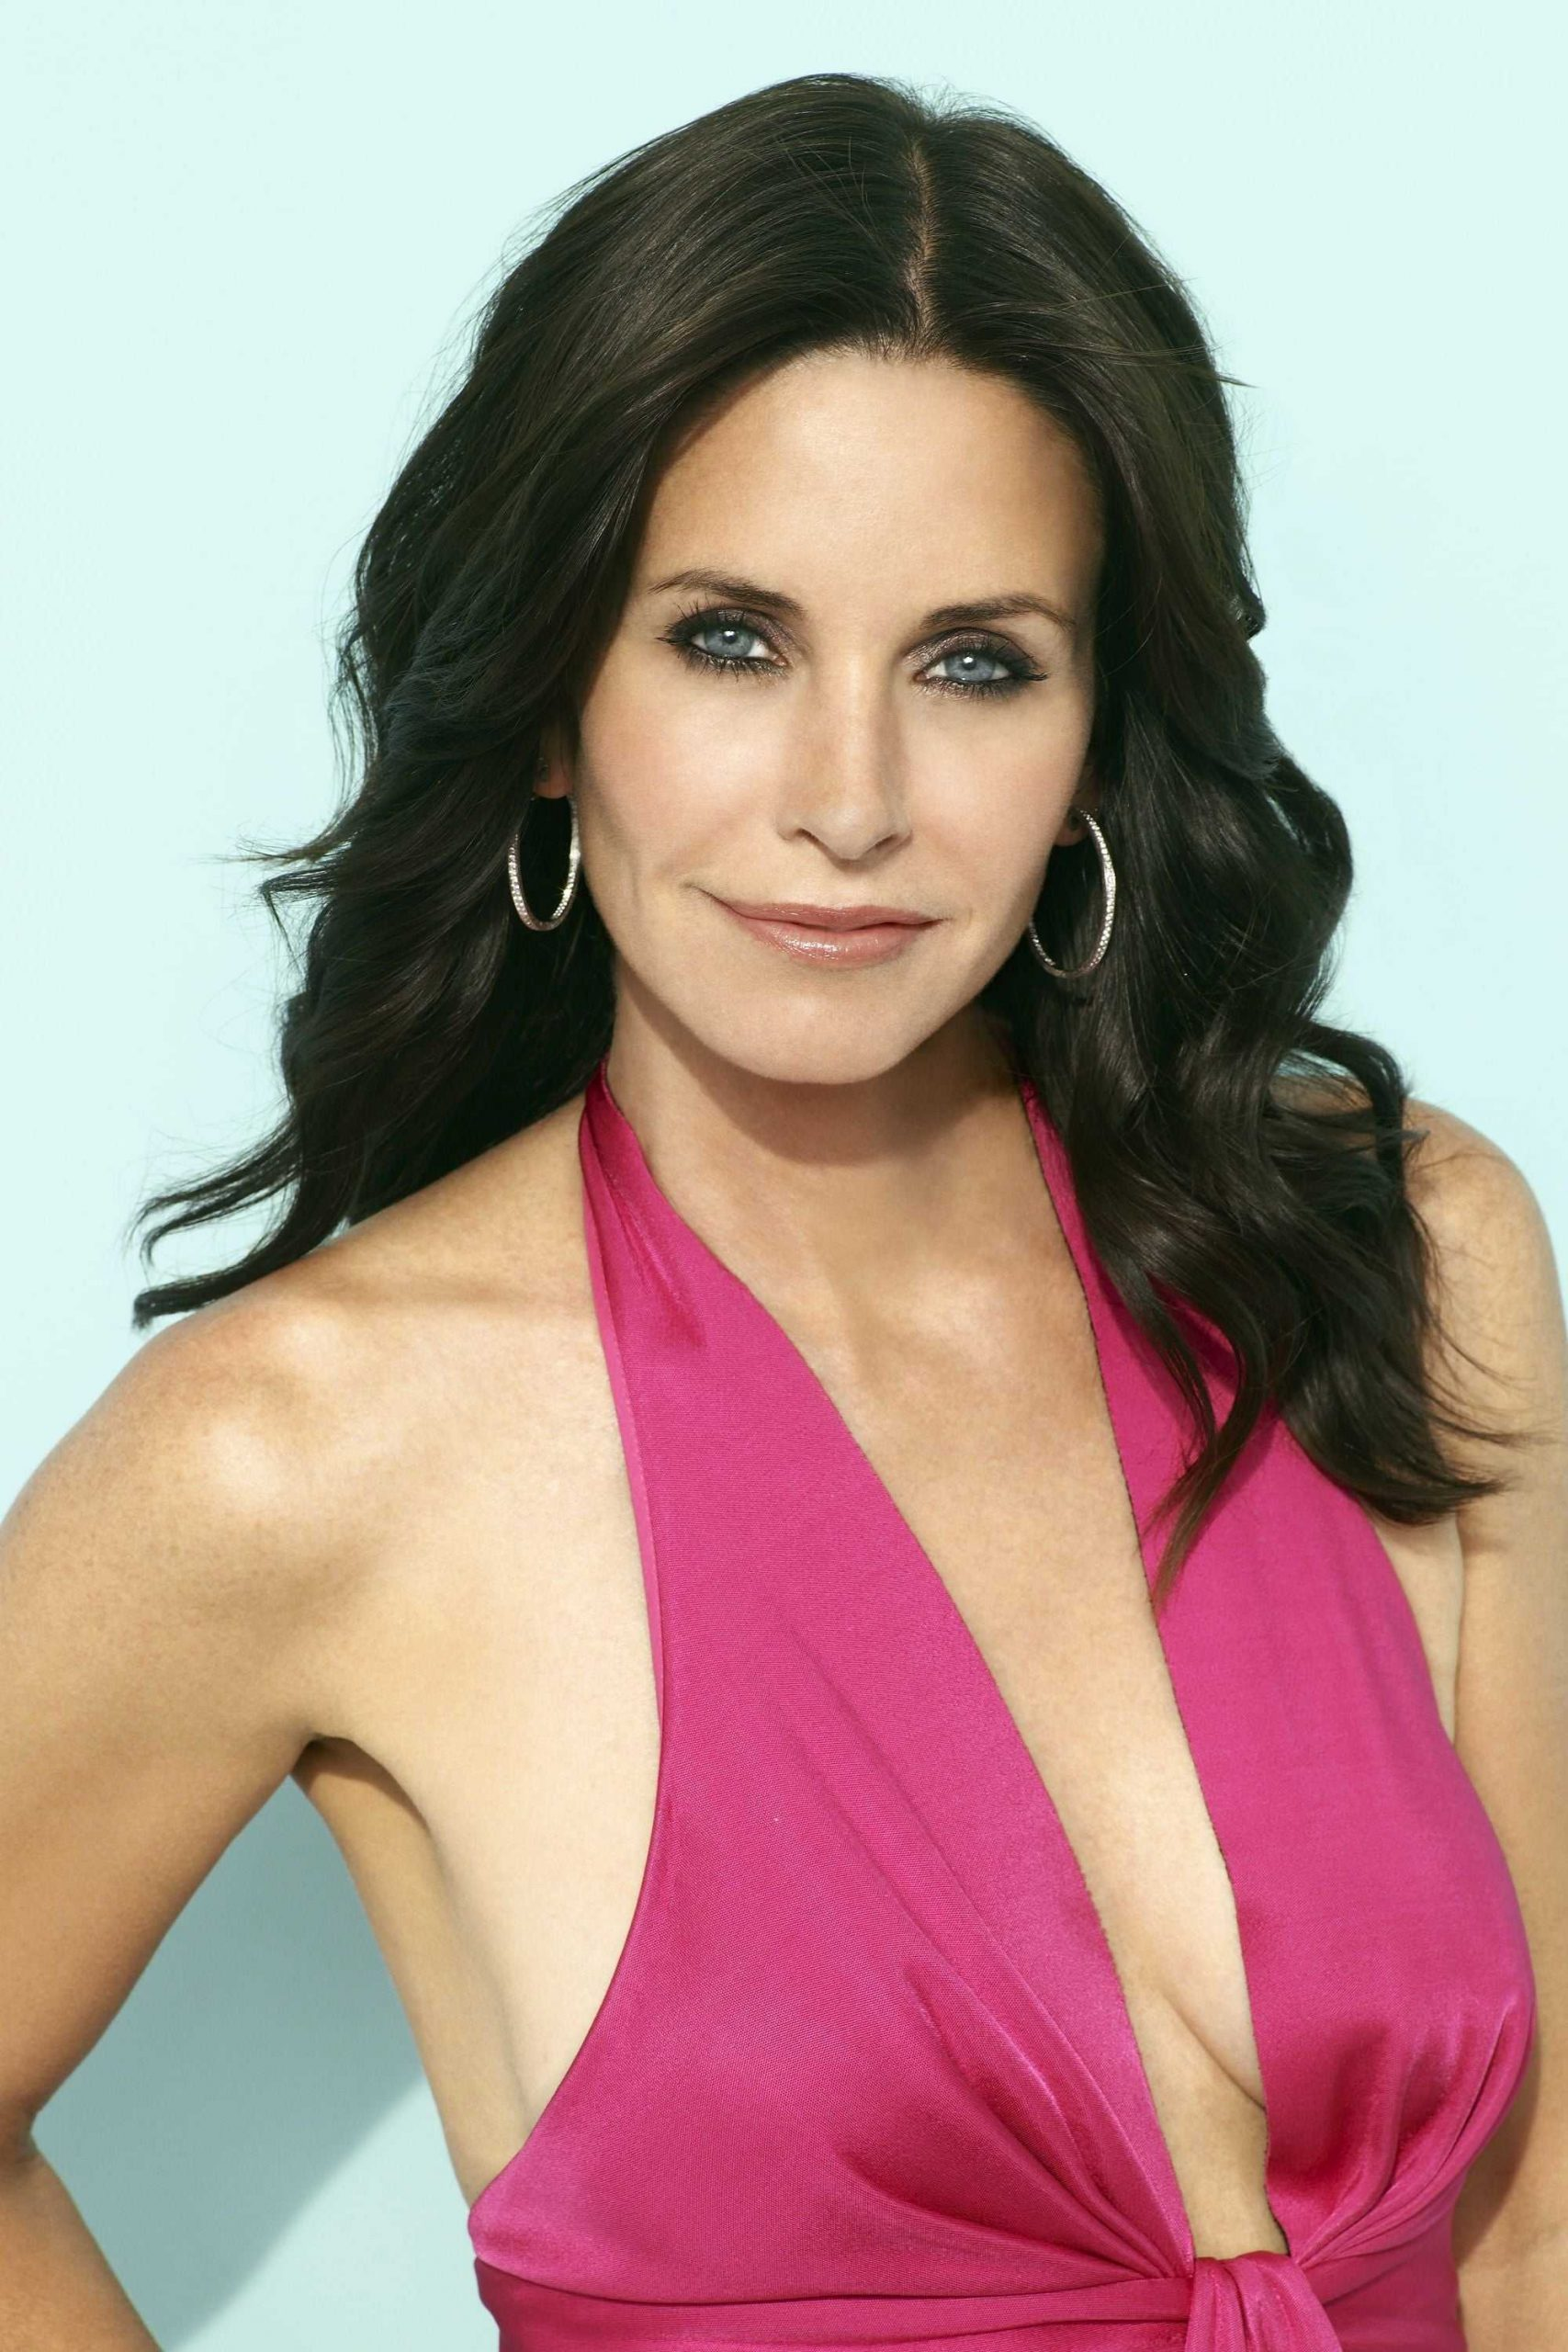 61 Courteney Cox Sexy Pictures That Will Make Your Heart Pound For